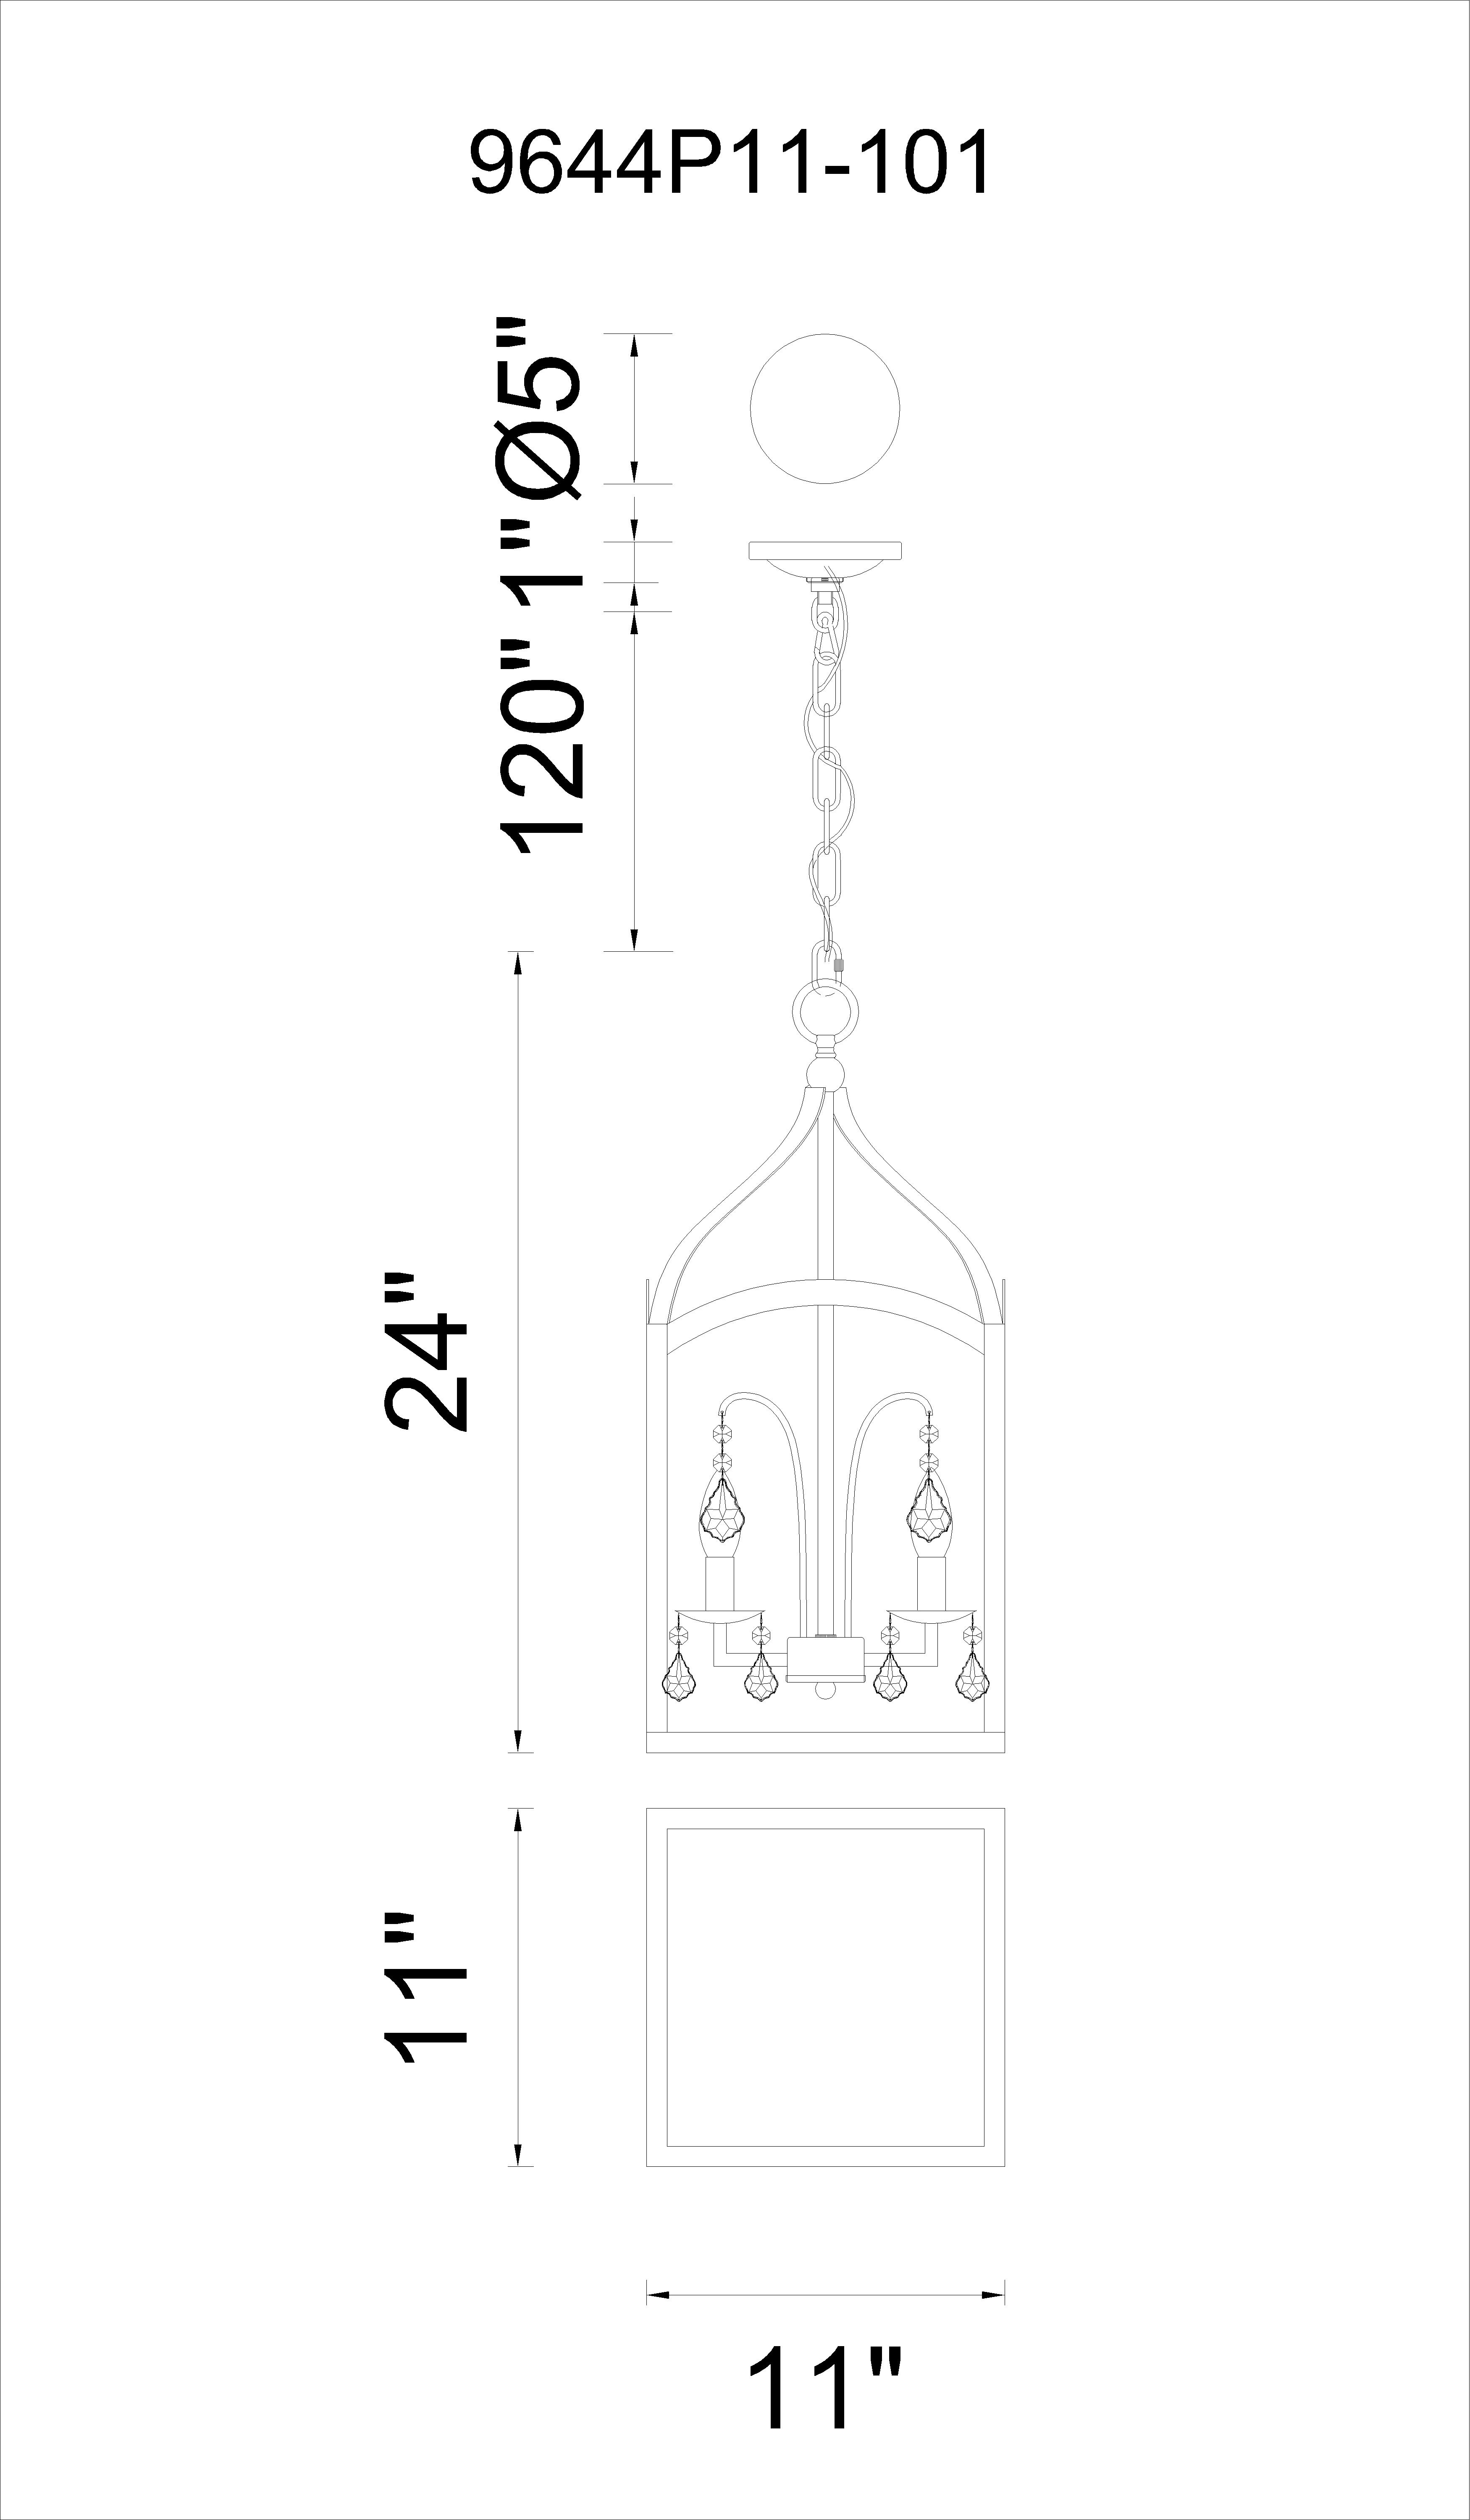 CWI Lighting Save 3 Light Up Mini Pendant With Antique Bronze Model: 9644P11-3-604 Line Drawing